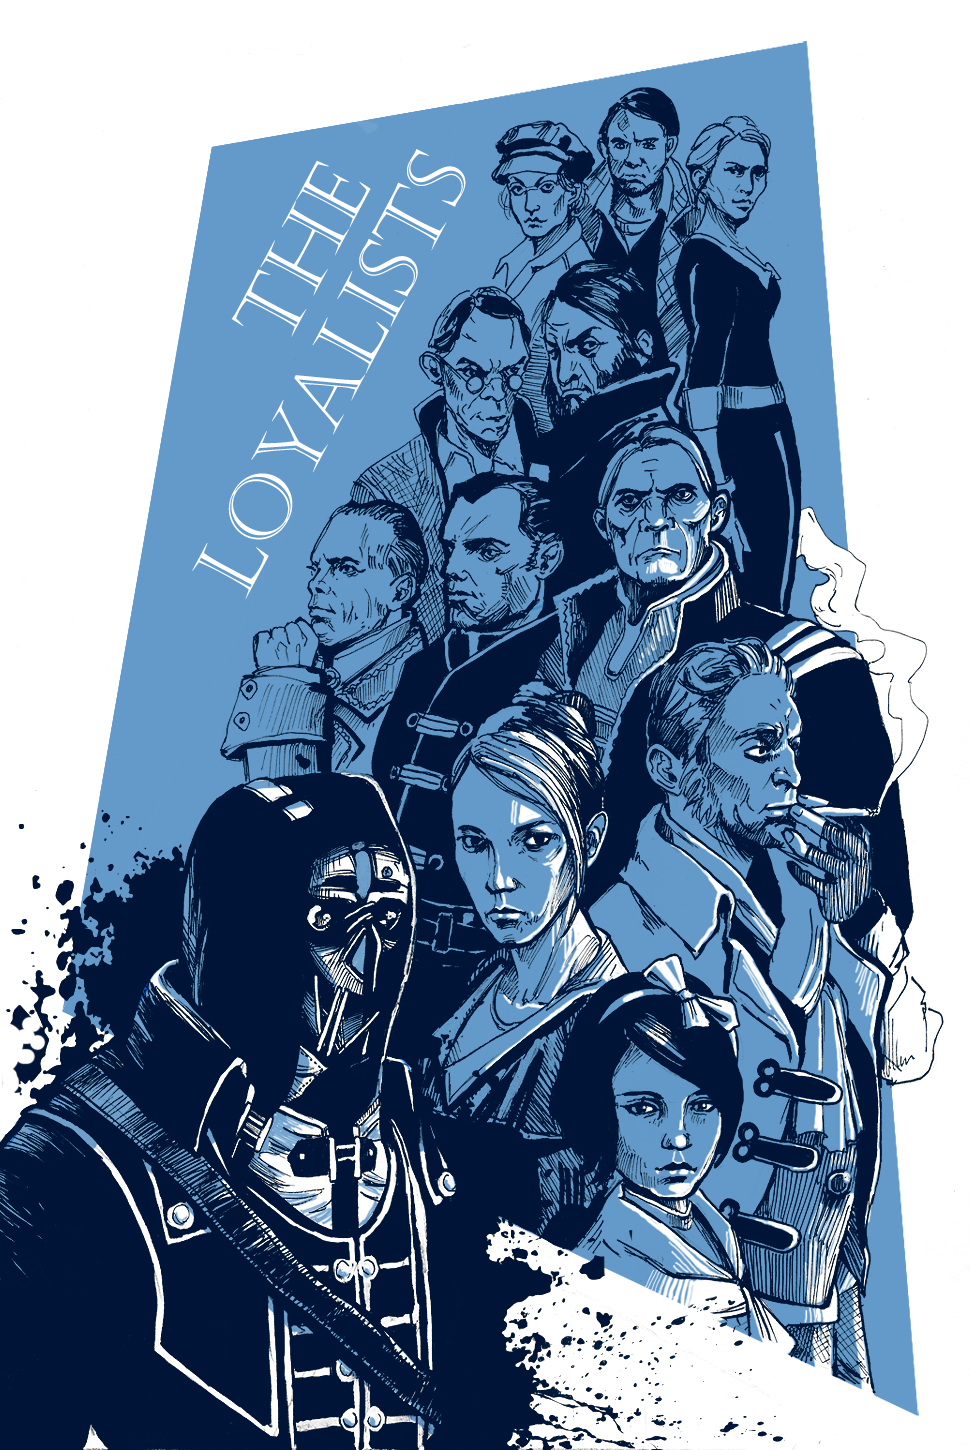 The loyalists by Shaidis